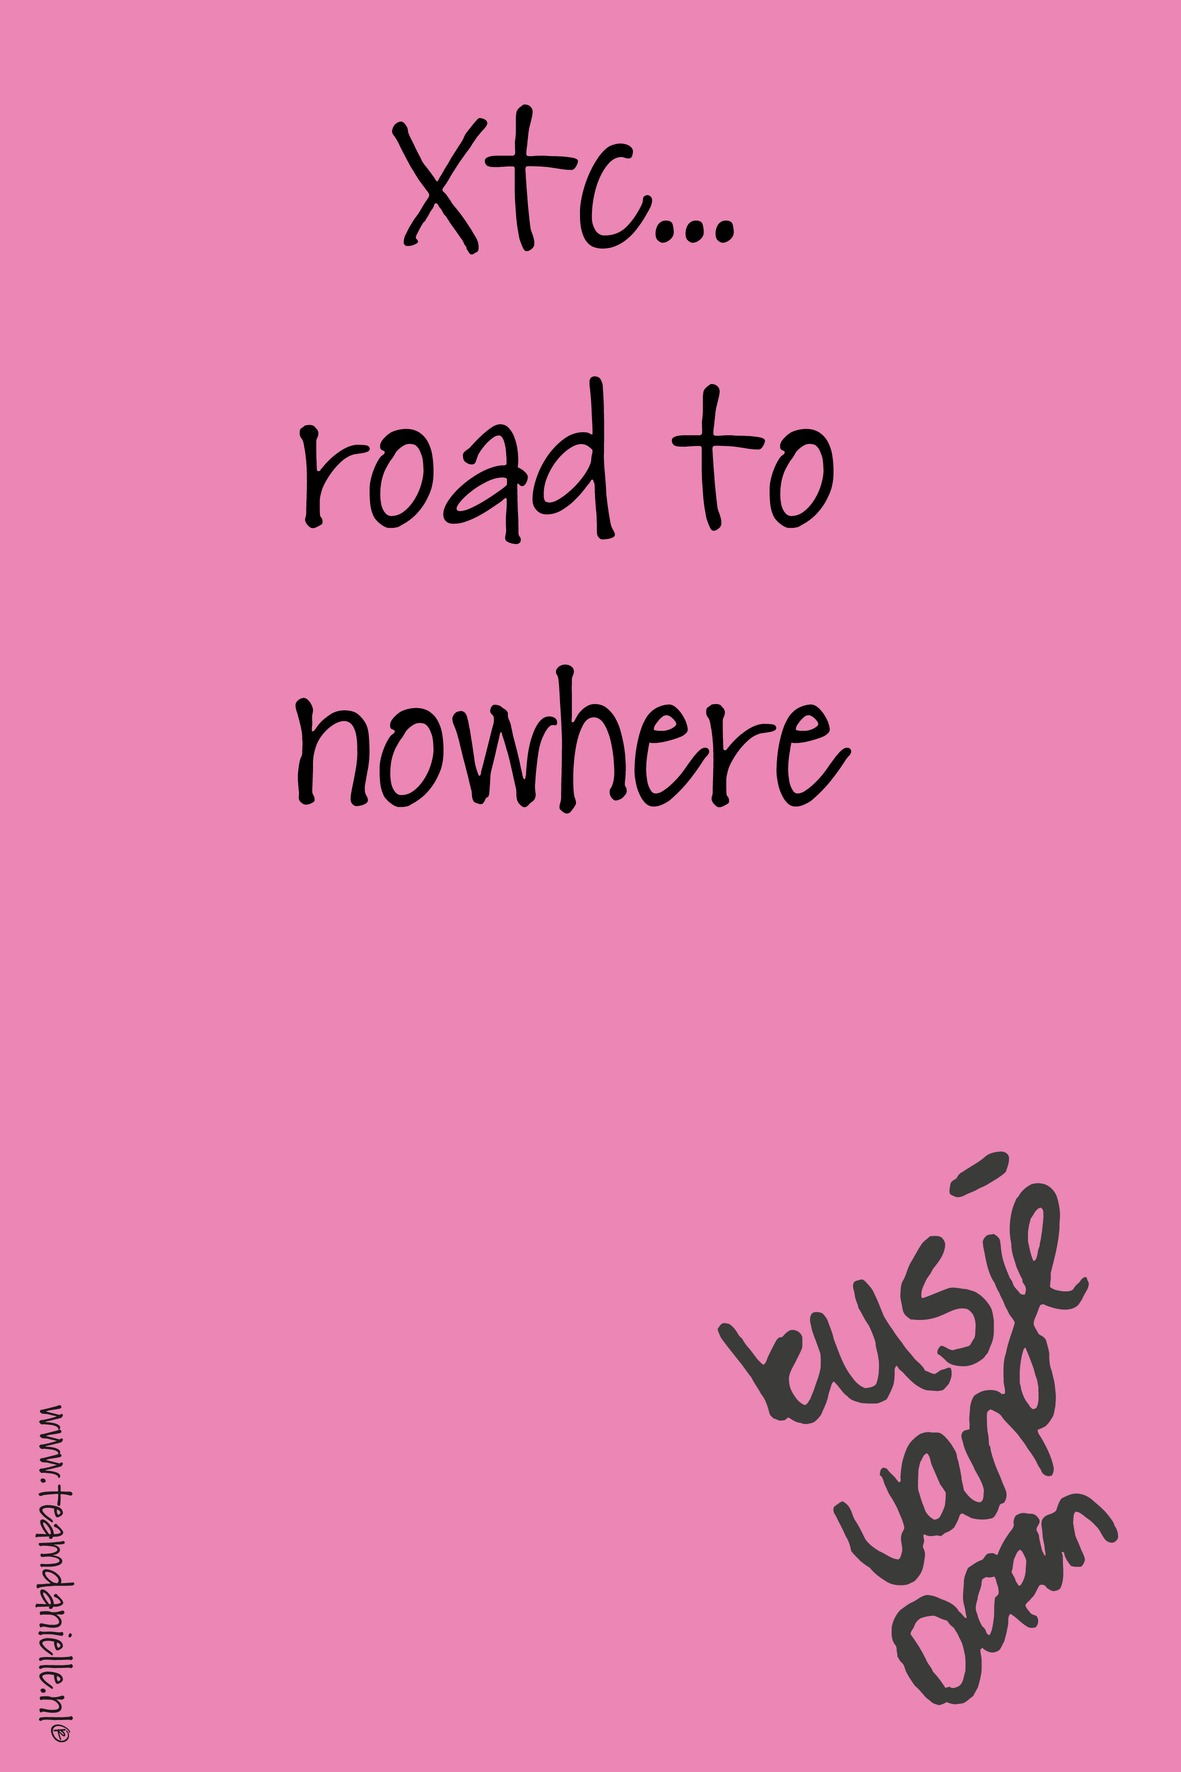 Kusje-180302-m-road to nowhere